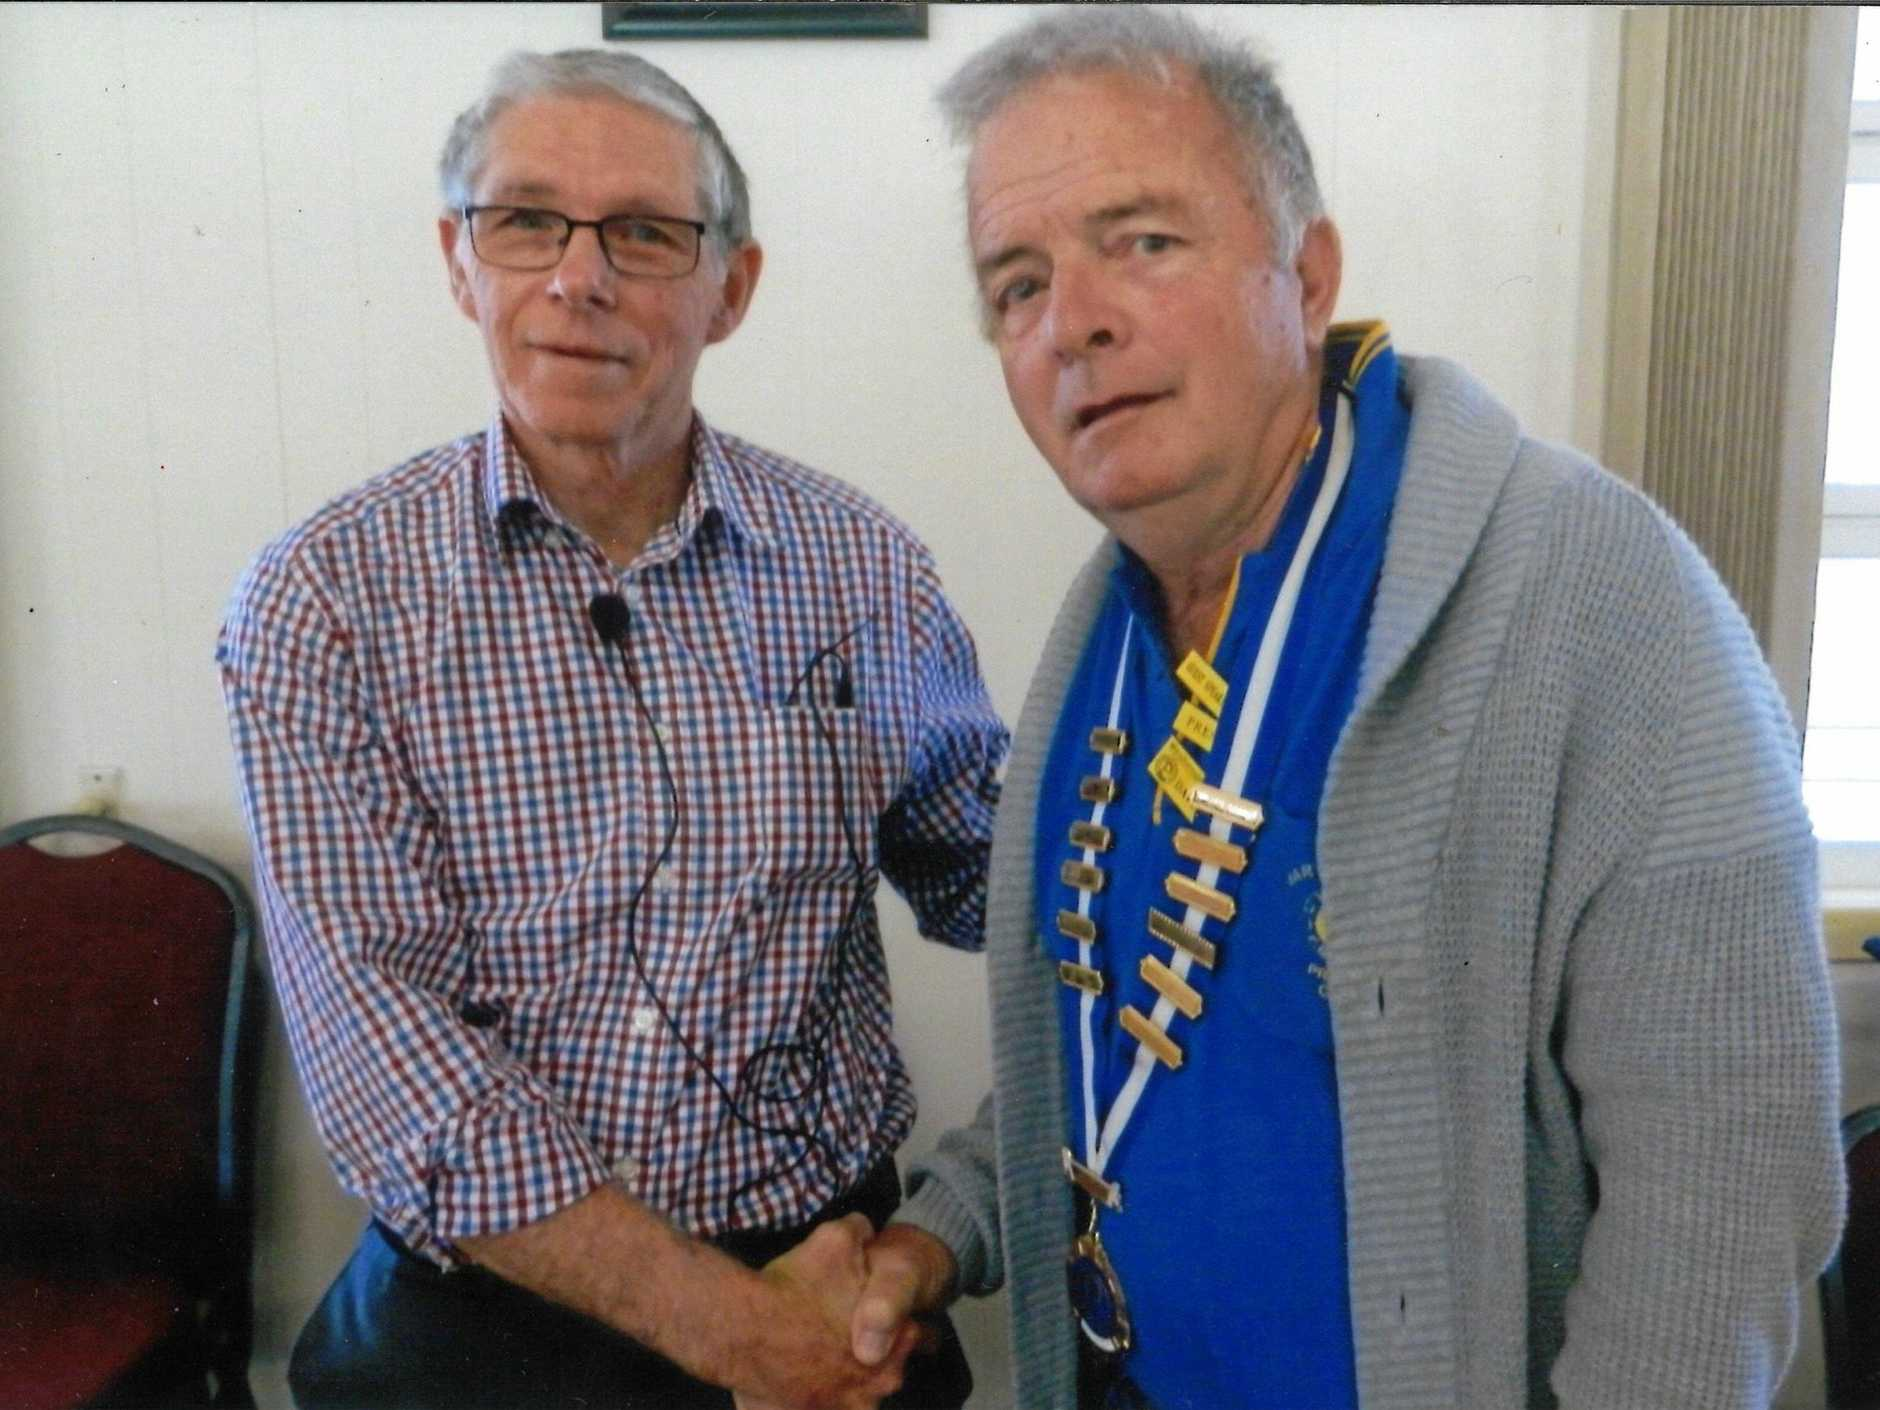 Guest speaker for July's Maryborough Probus meeting was Jim Hohnke who spoke about the missionary ship the Douless, pictured with president David Booth (right).